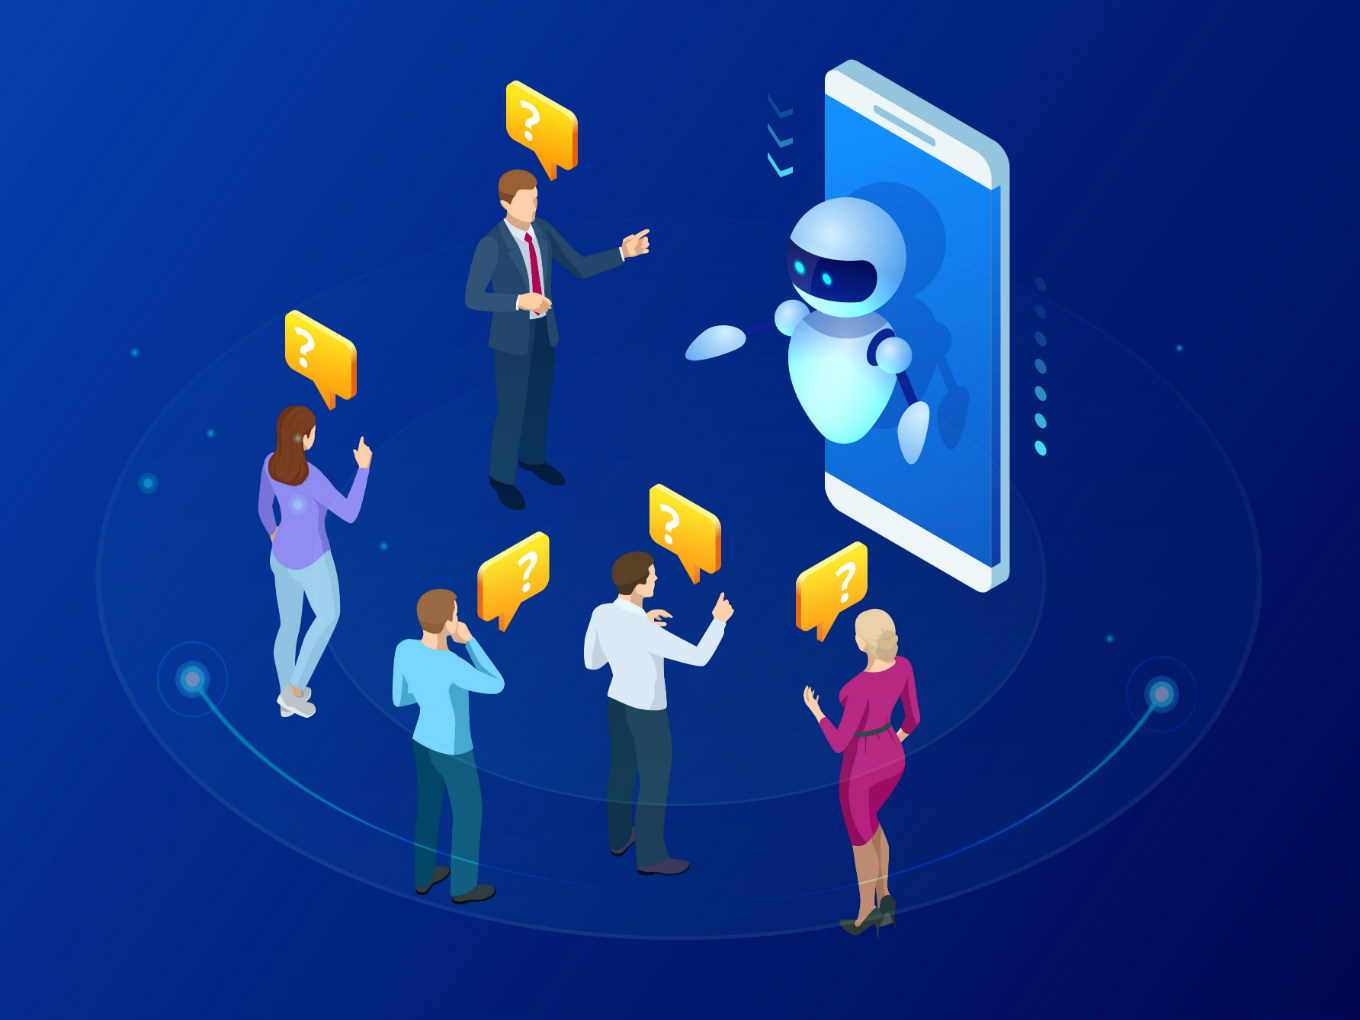 understanding-the-deeptech-that-goes-into-avaamos-enterprise-chatbots-and-voice-assistants-feature